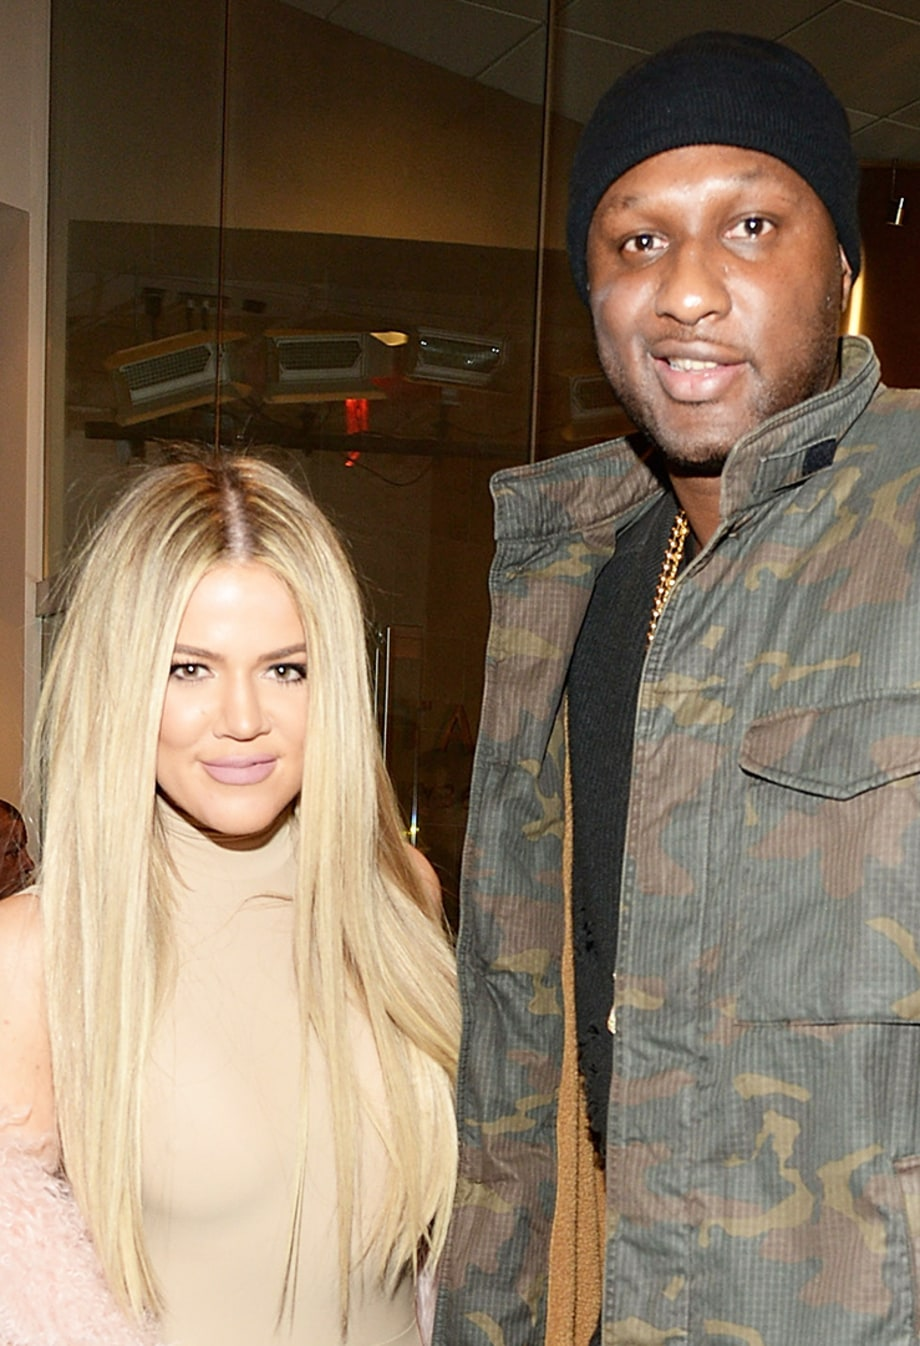 Lamar Odom Responds to Khloe Kardashian's Divorce Filing, Asks Judge to Deny Spousal Support